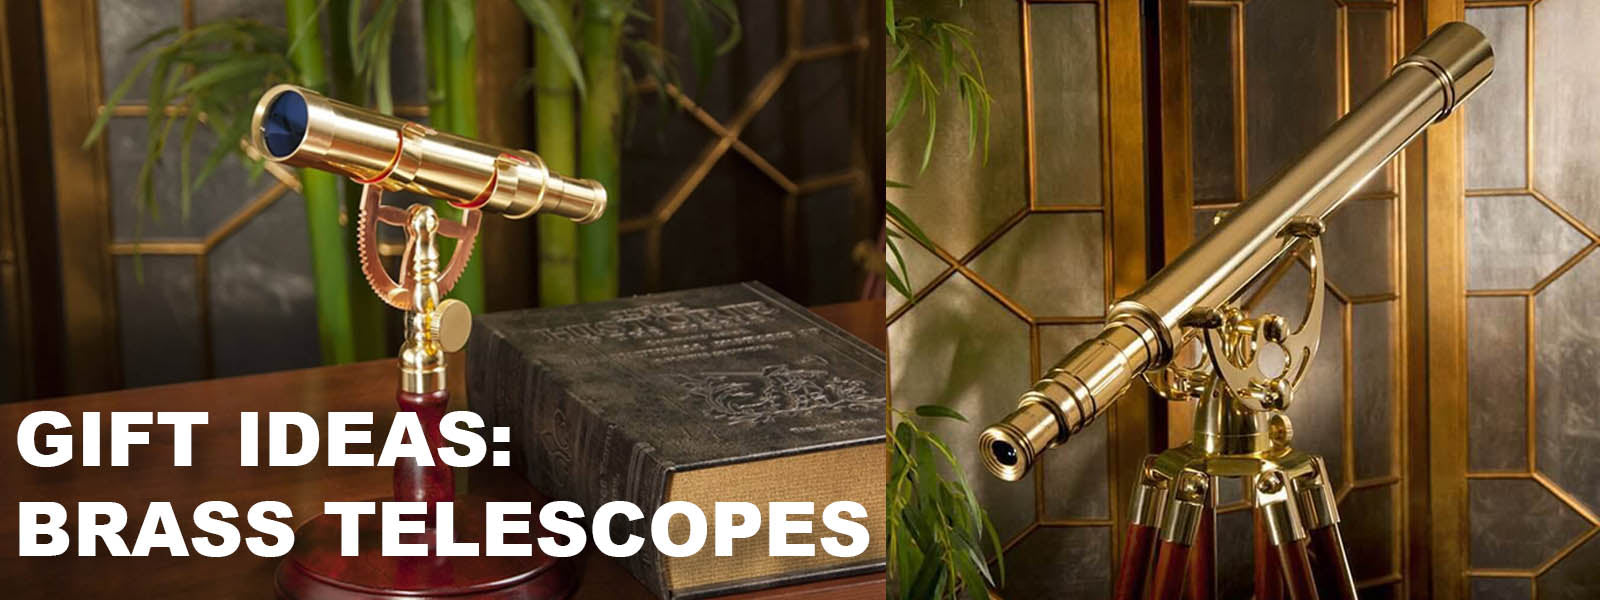 Gift Ideas: Fully Functional Brass Telescopes serve as both Home Decor & Amazing Gifts!